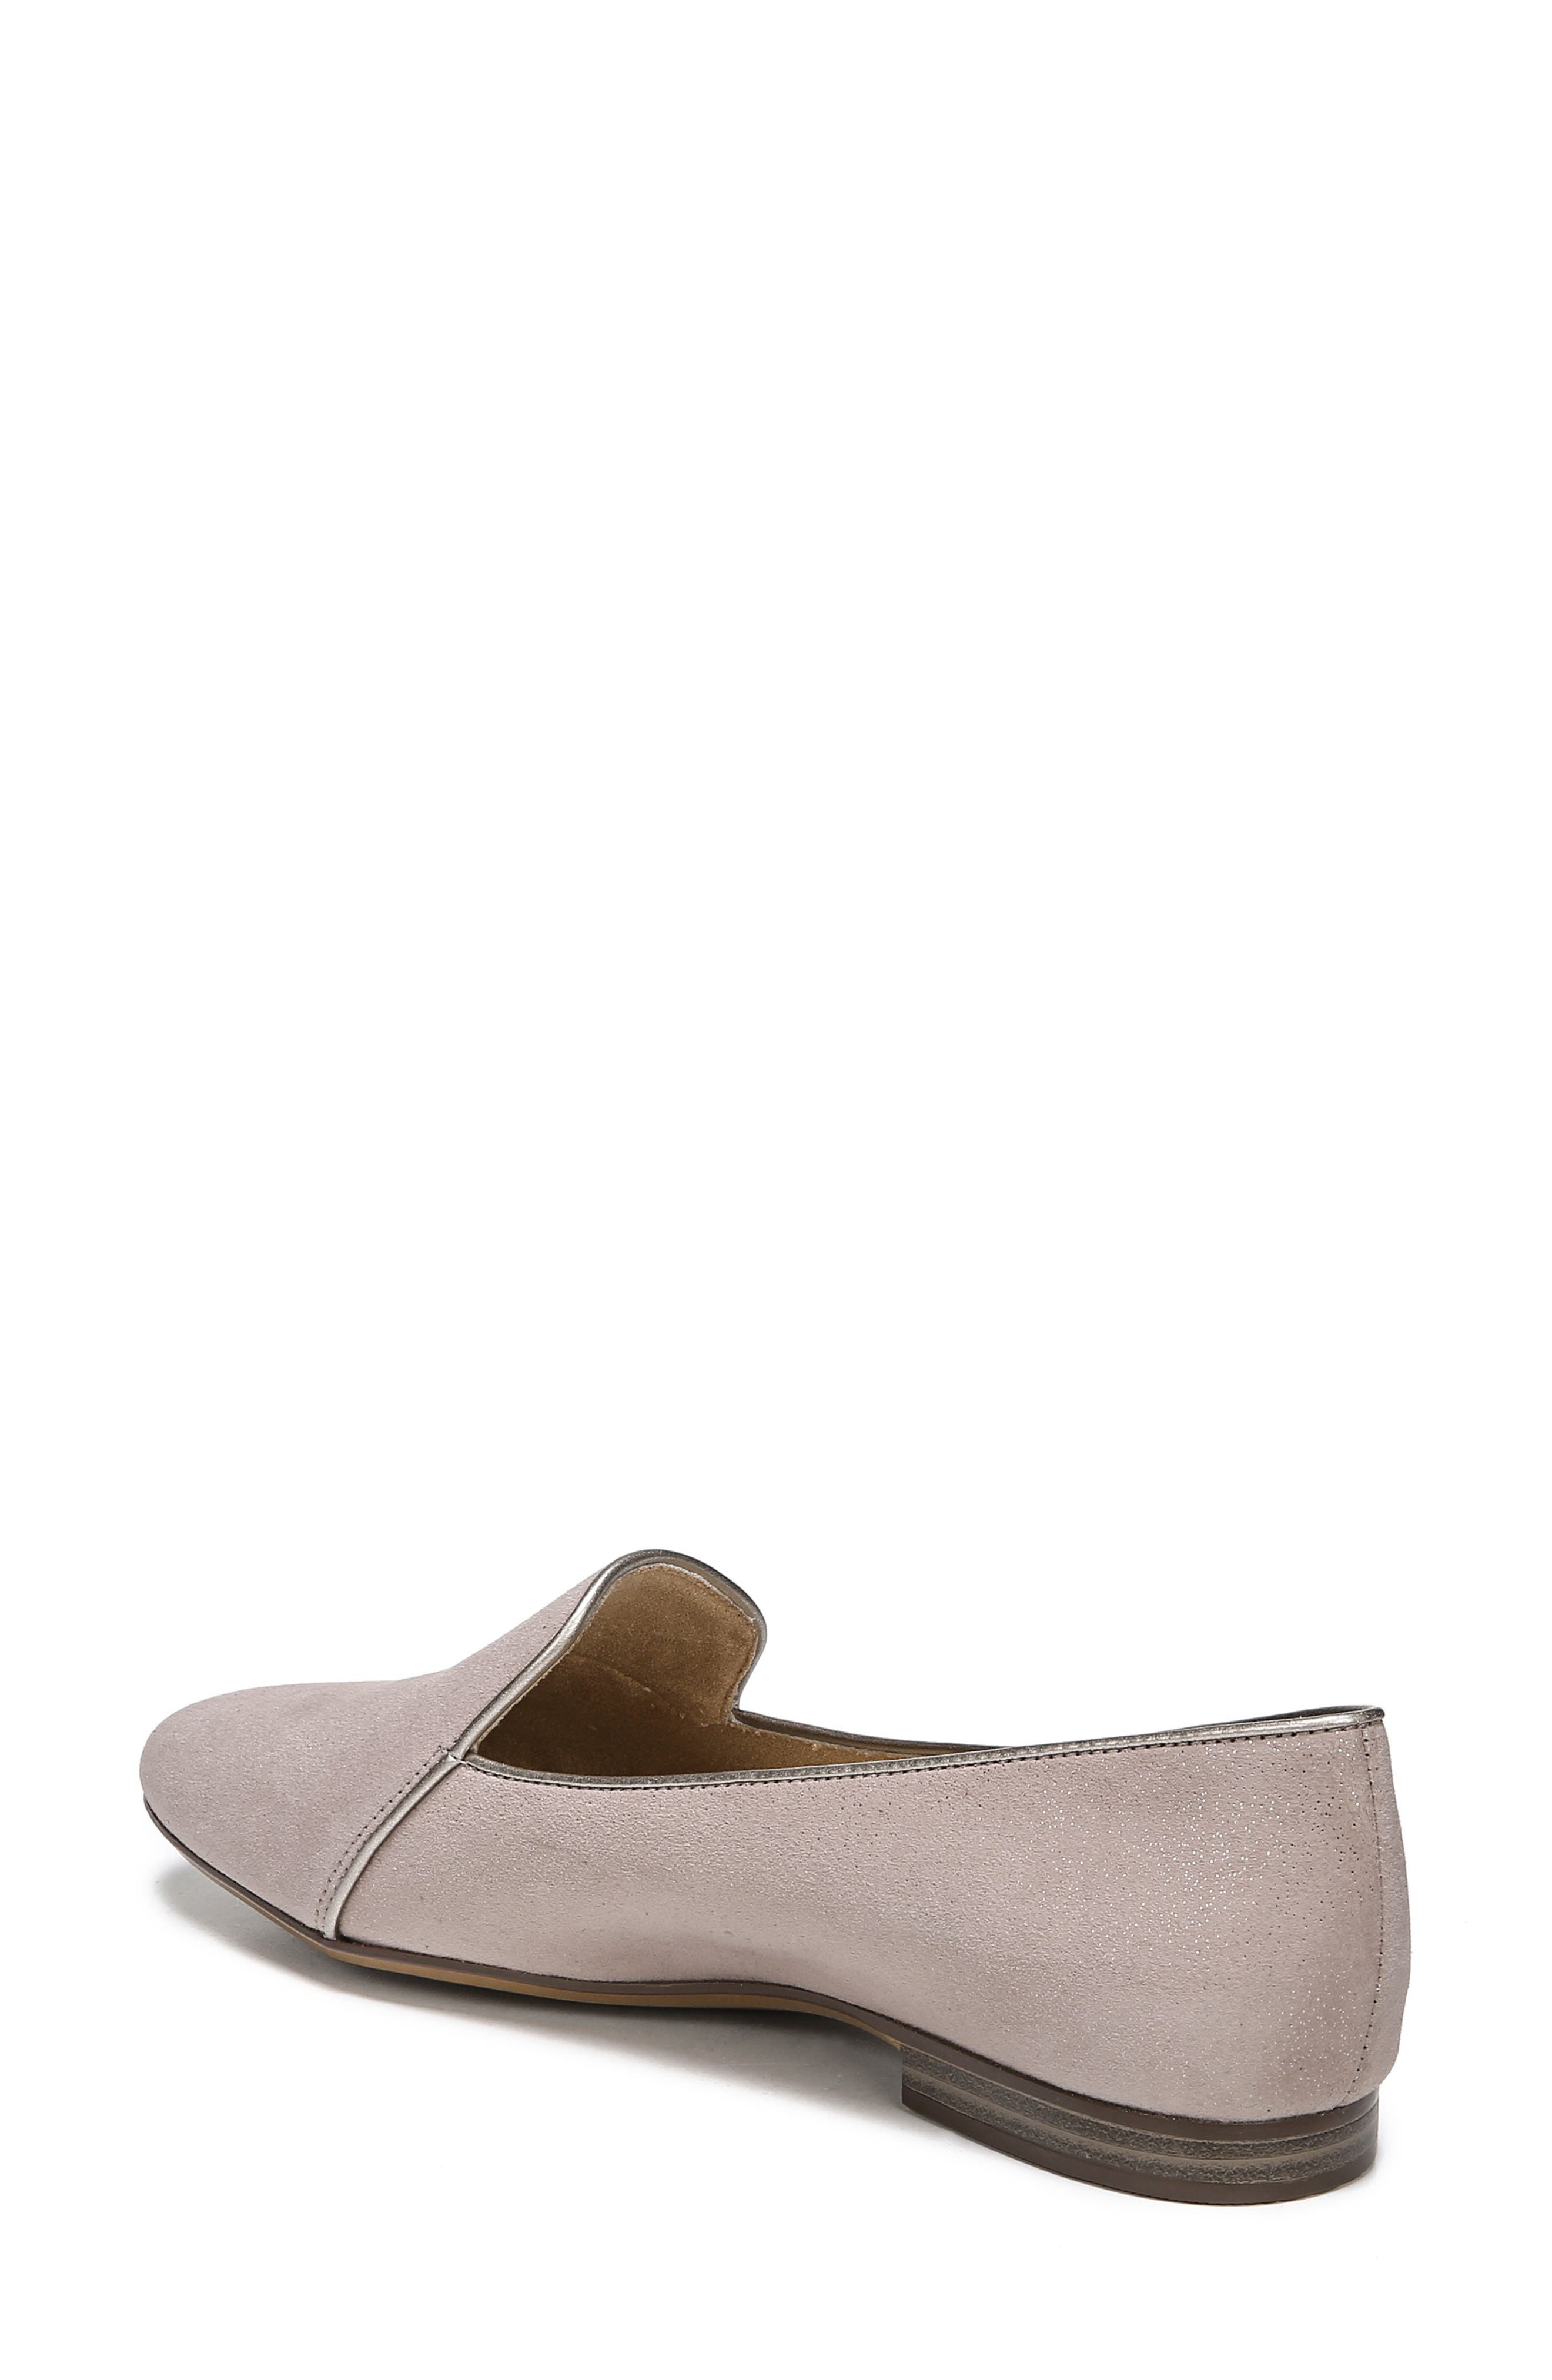 Emiline 2 Loafer,                             Alternate thumbnail 2, color,                             TAUPE GLITTER DUST SUEDE